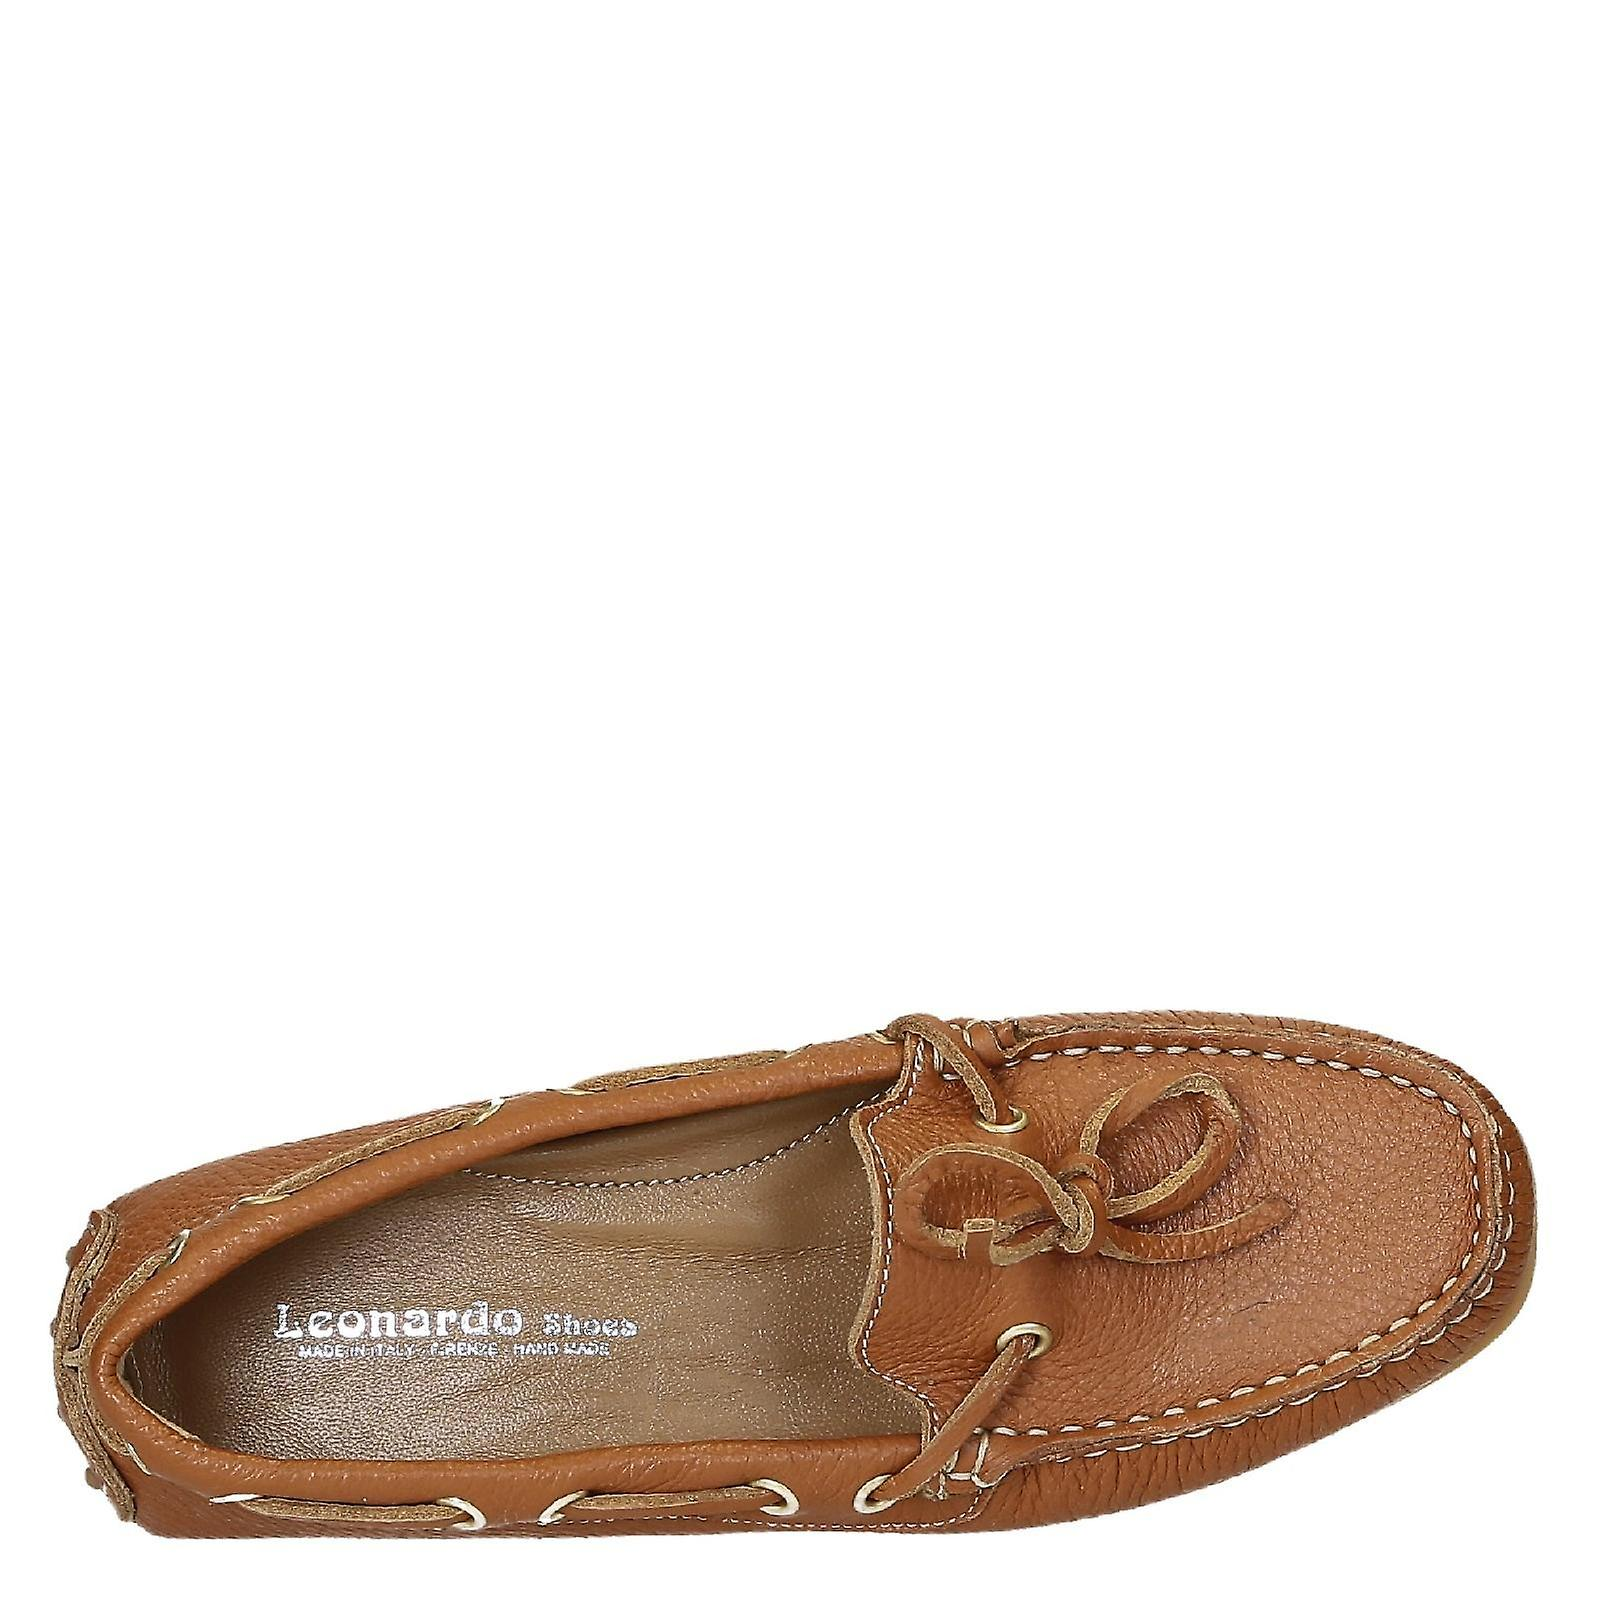 moccasins tan in driving Women's grain leather full Bqw5ZPt